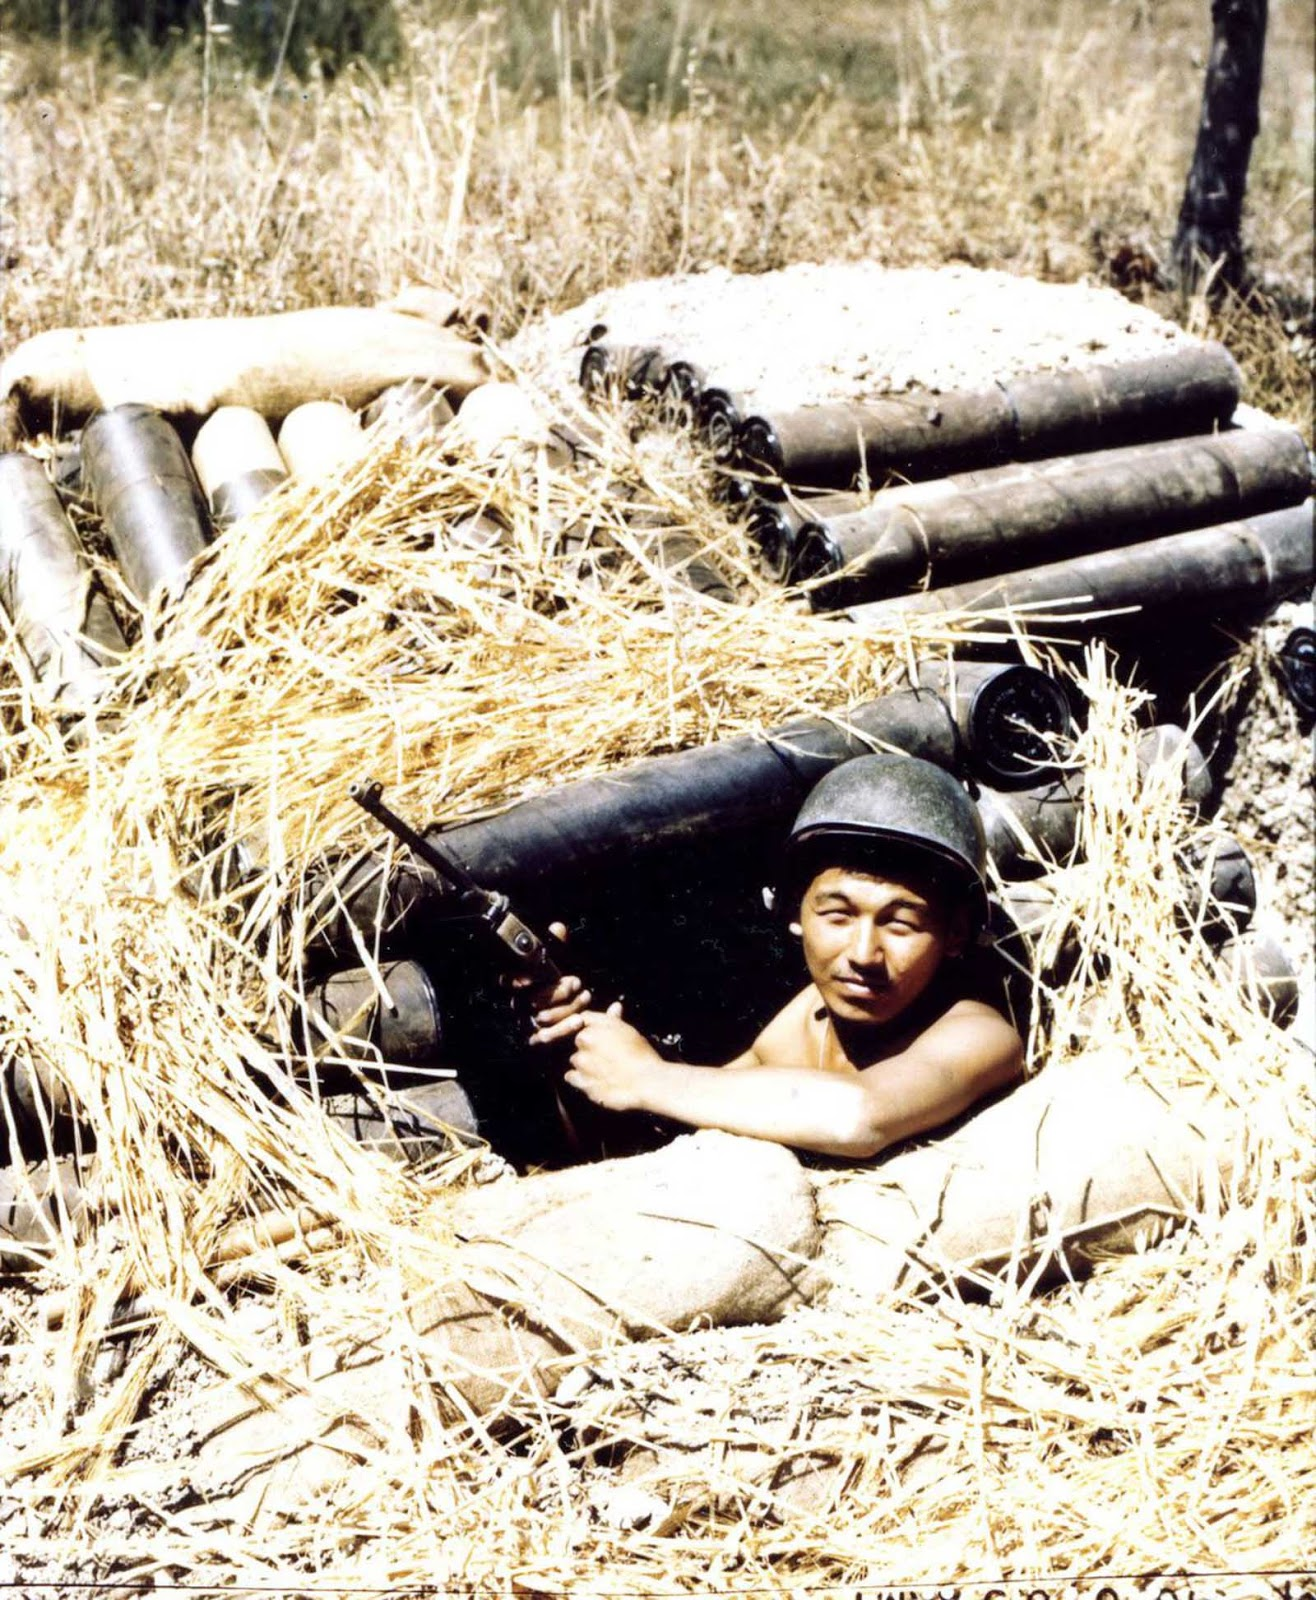 Private Tsuneo Shiroma, of the 522nd Field Artillery Battery B, in a foxhole during the Allied invasion of Italy. 1943.